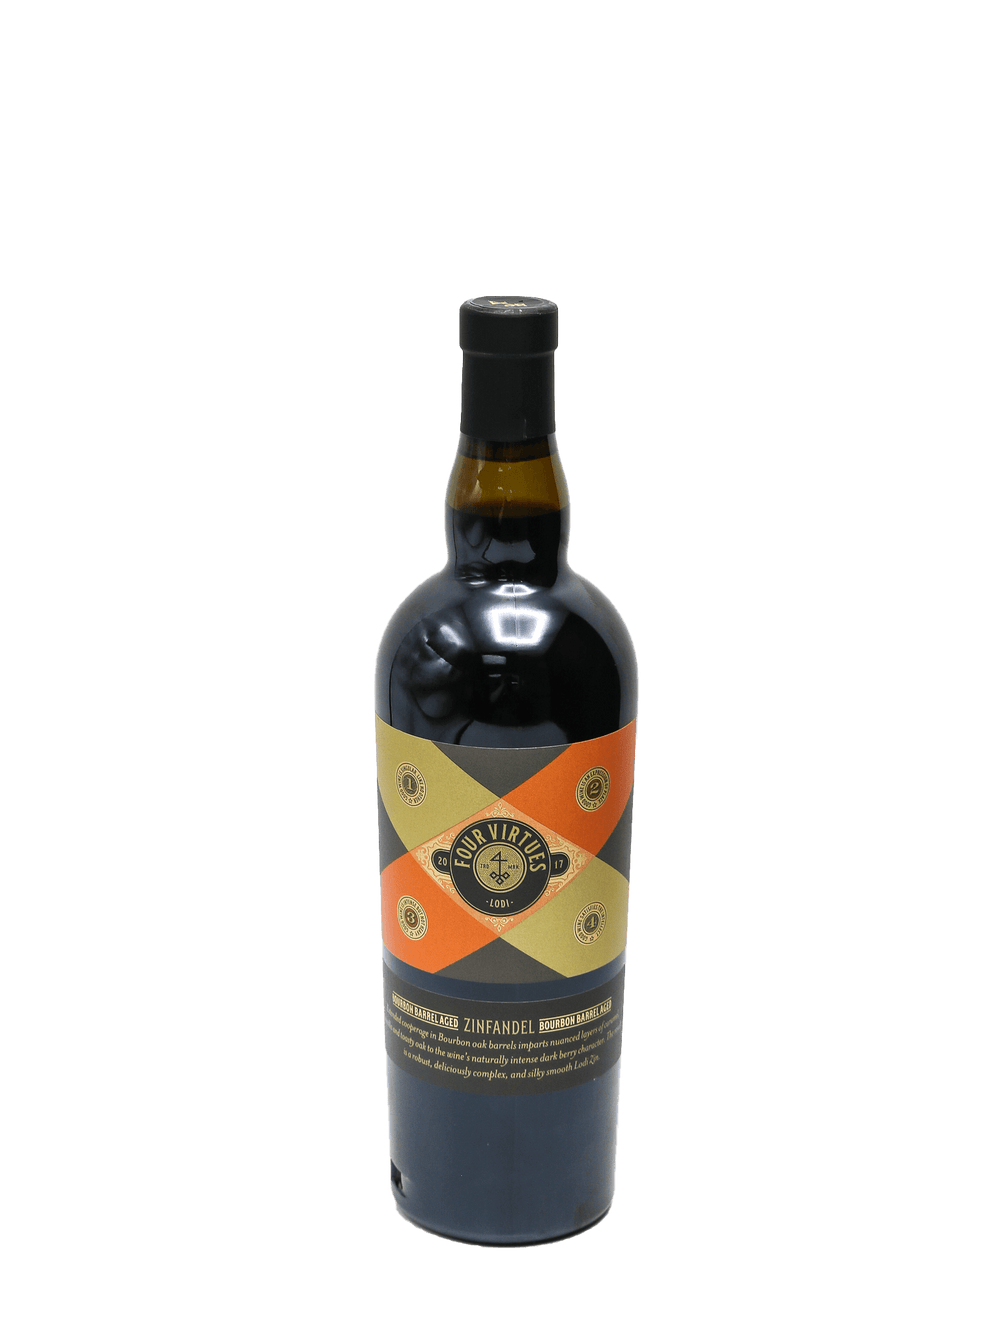 2017 Four Virtues Bourbon Barrel Aged Zinfandel